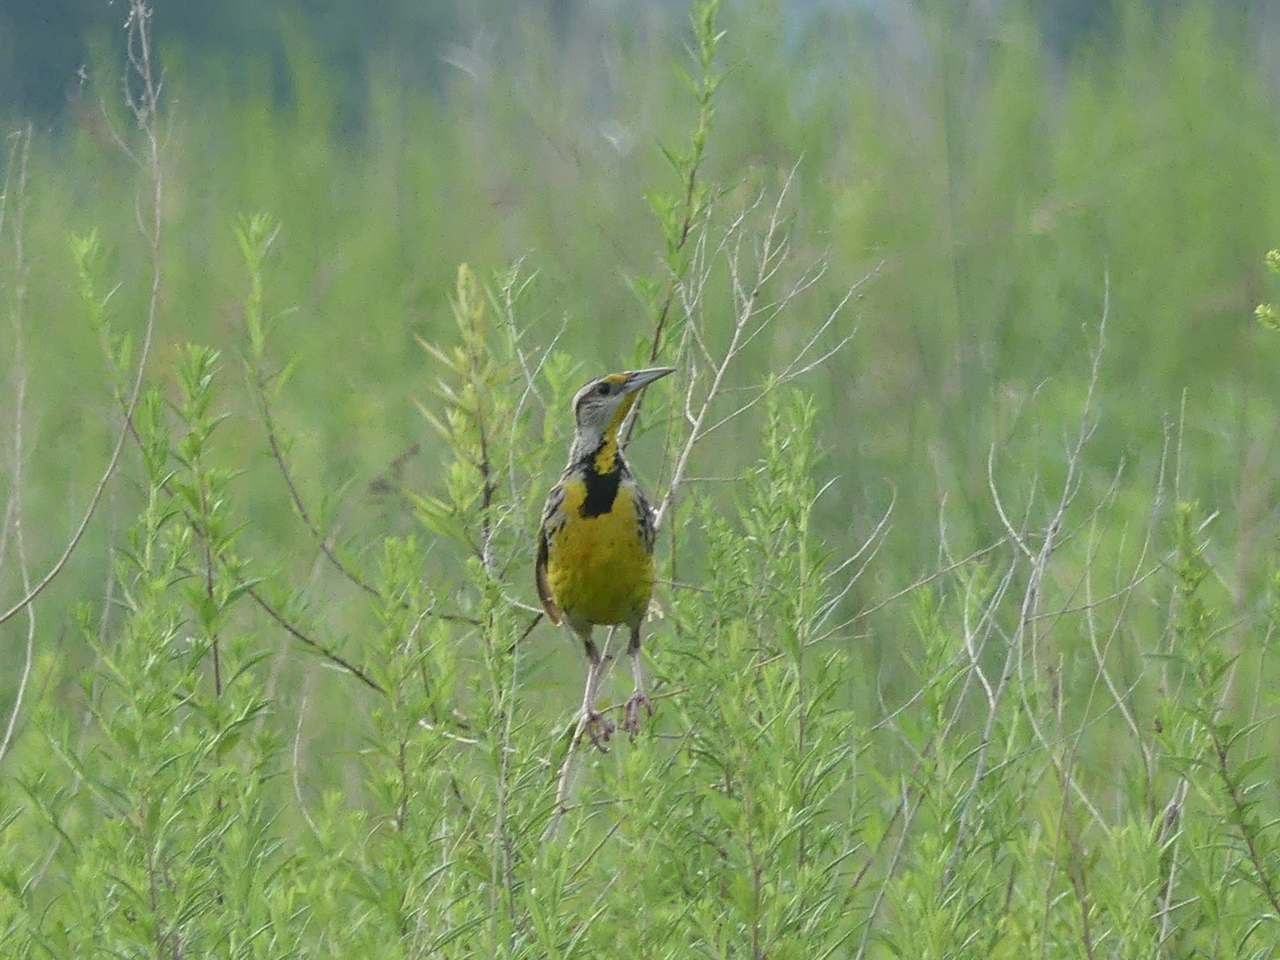 Photo Credit: Karalyn Lamb Above, the Eastern Meadowlark in nature. This is a species of concern due to general land use practices.